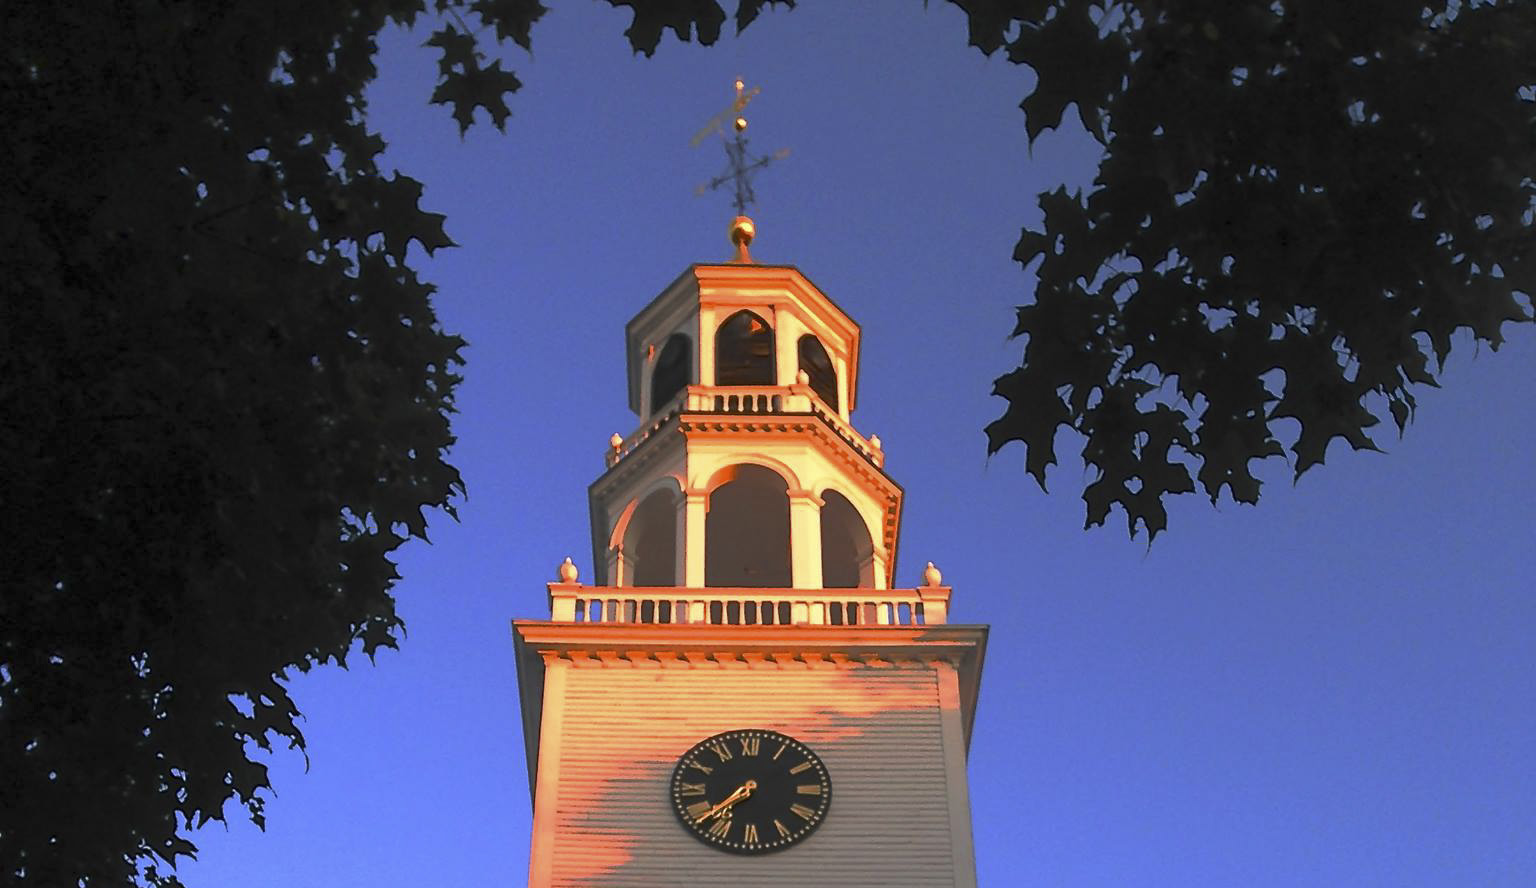 First Parish in Wayland - church steeple in afternoon sun